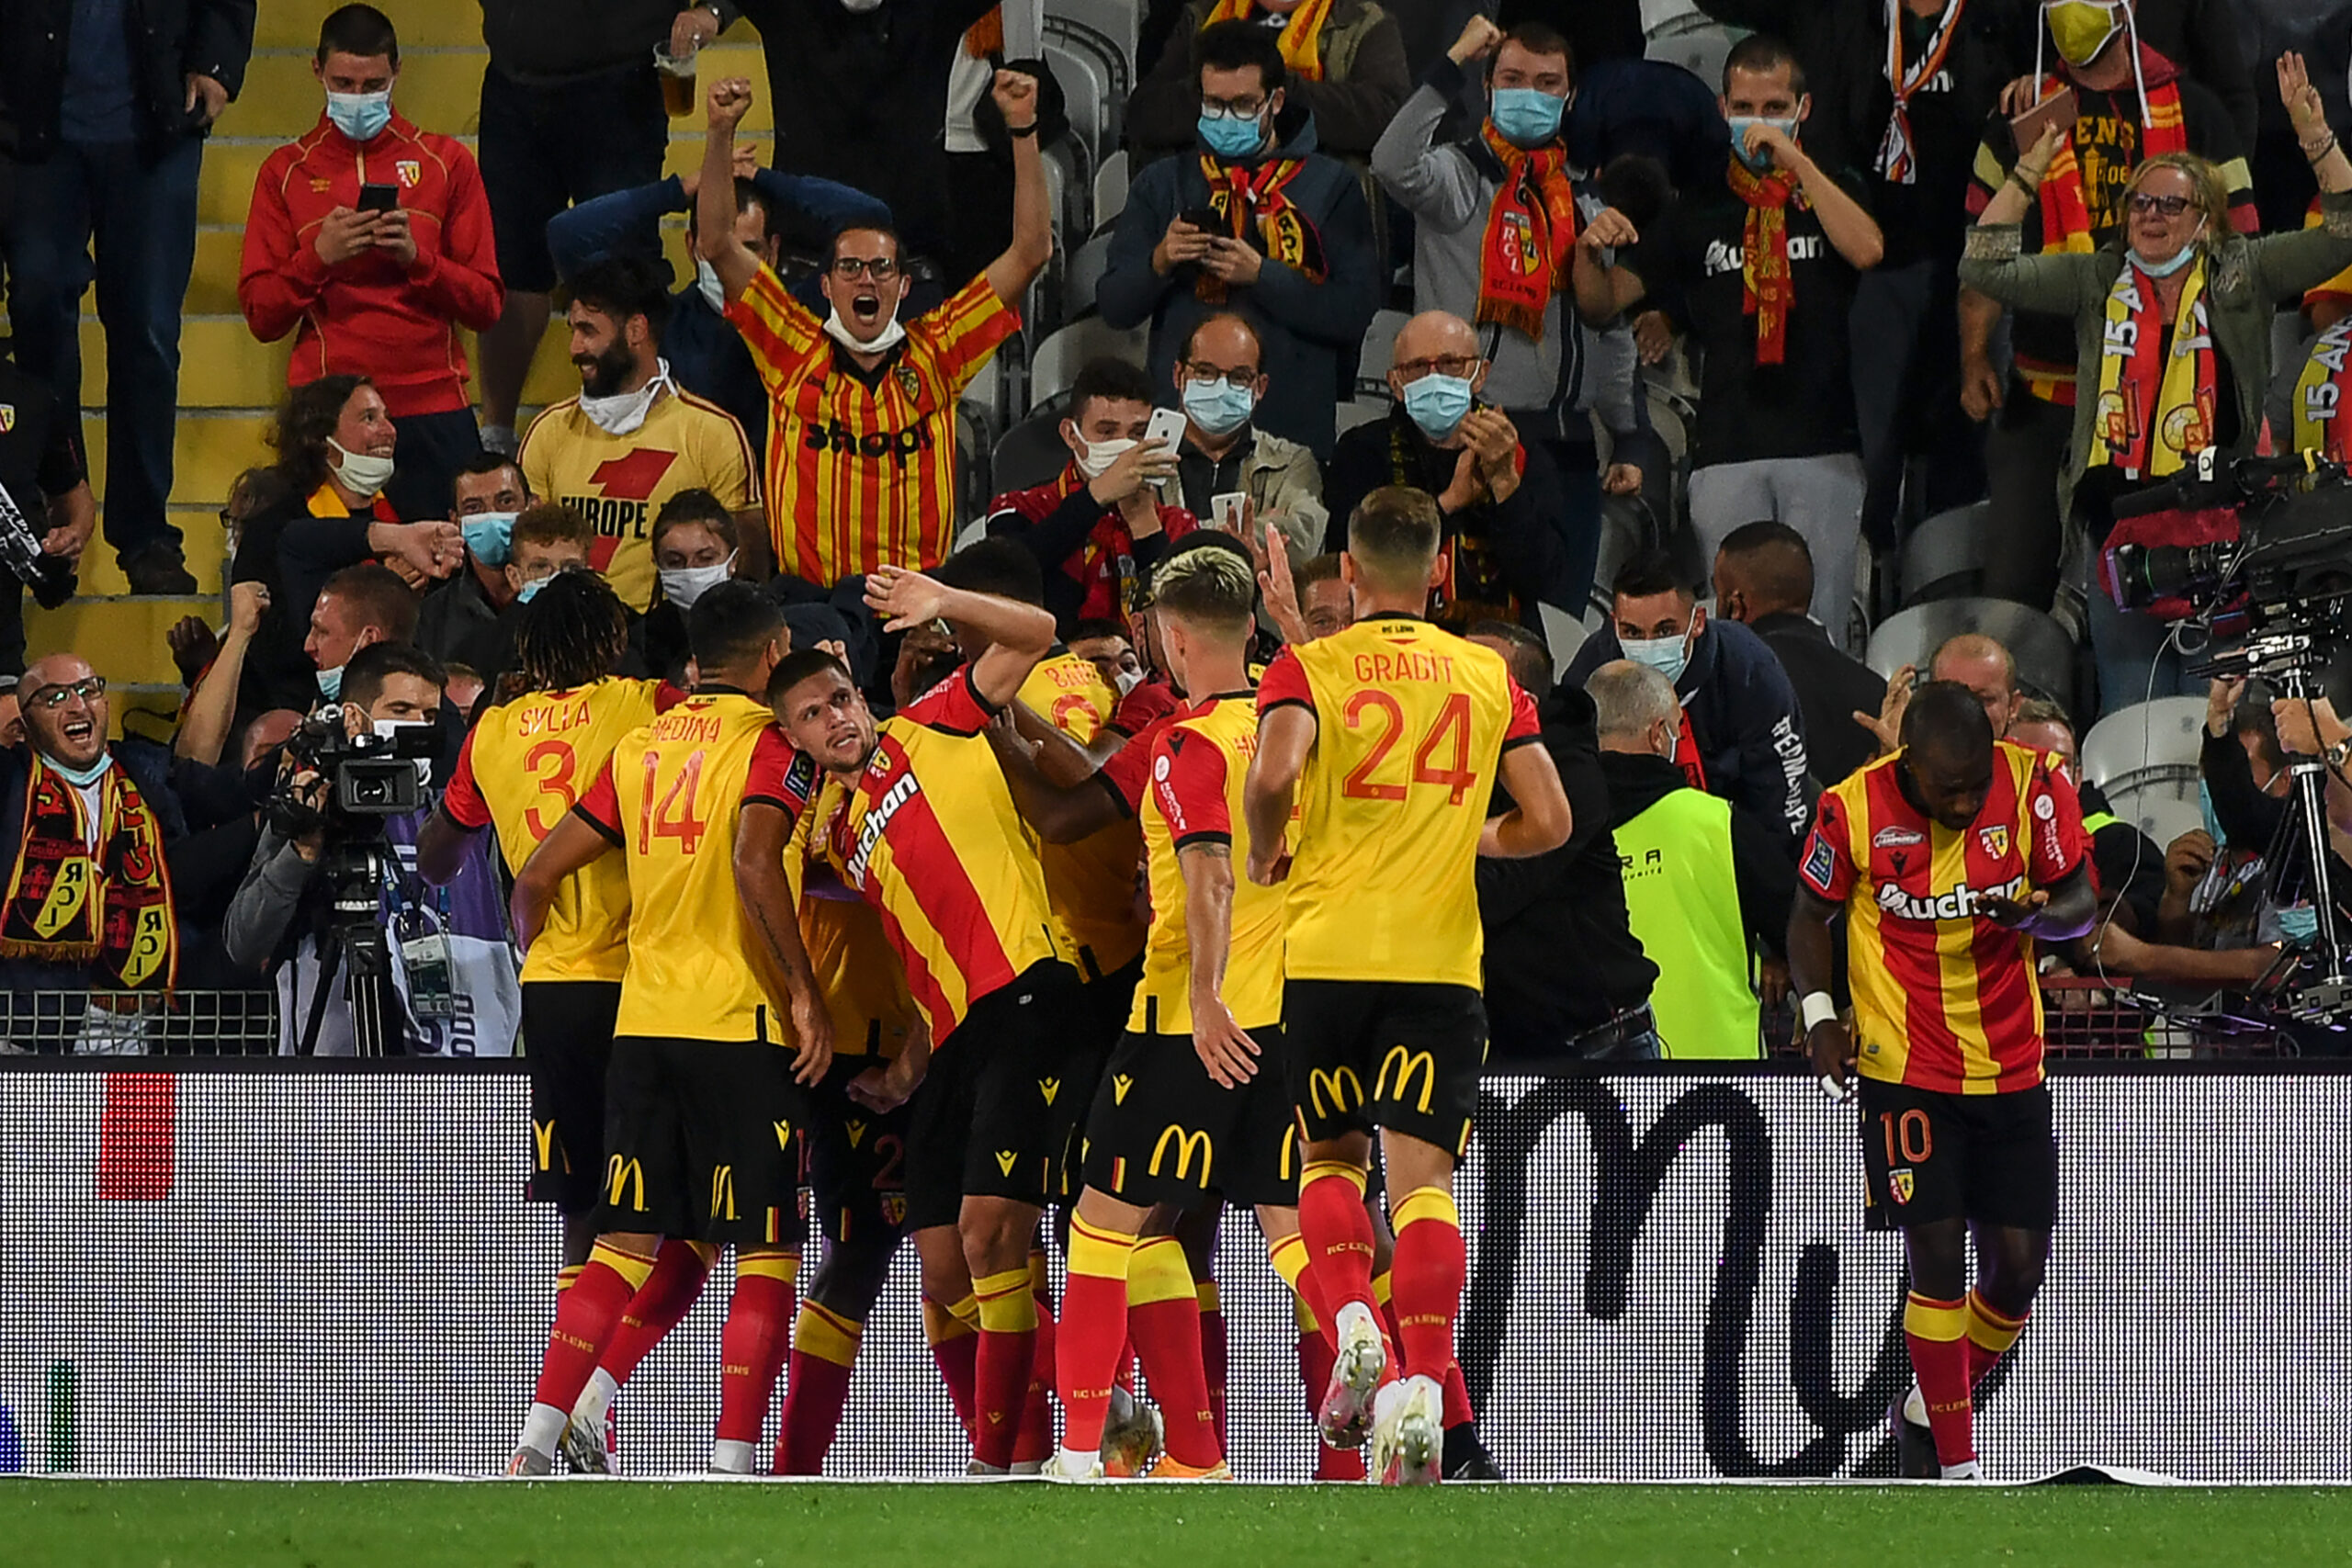 Lens defeat PSG in their opening match